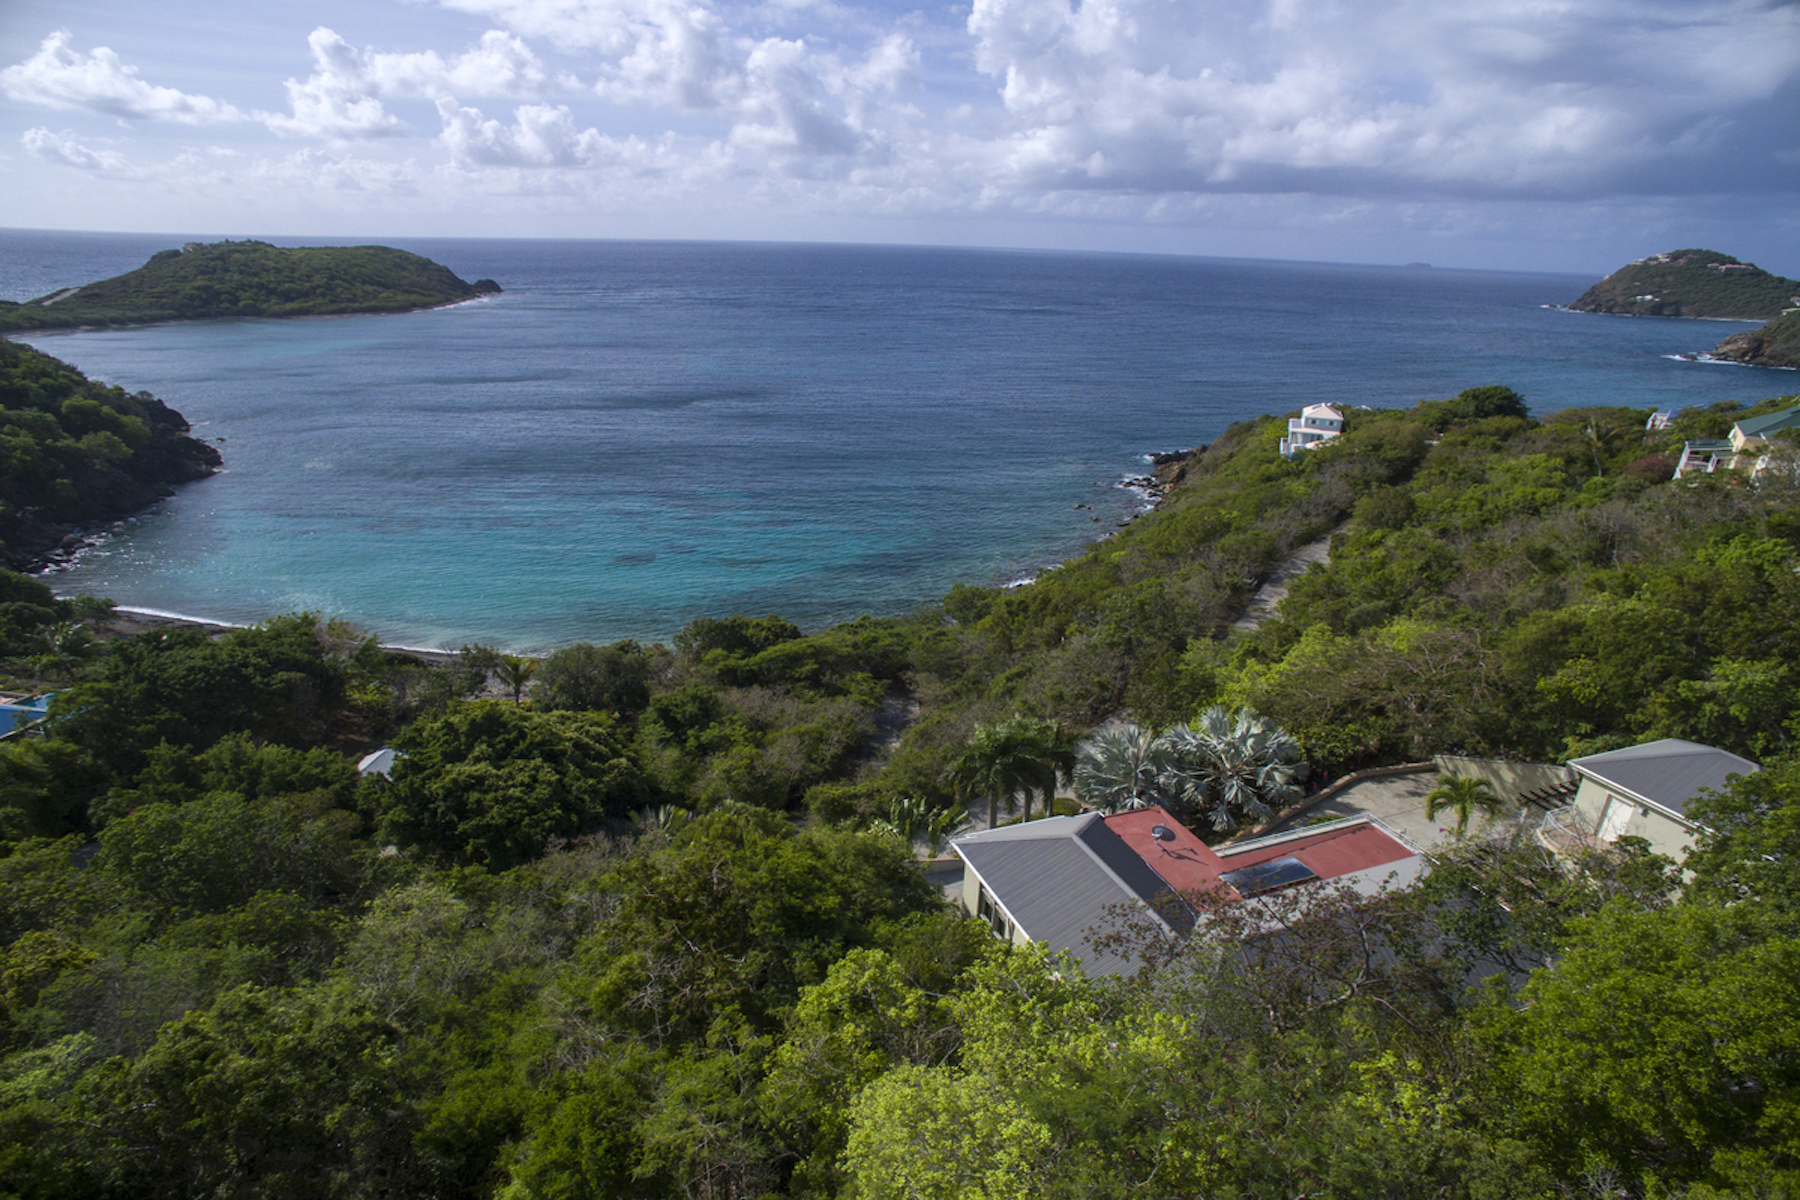 Single Family Home for Sale at Latitude Villa 15A-7-13 Rendezvous & Ditleff St John, Virgin Islands 00830 United States Virgin Islands